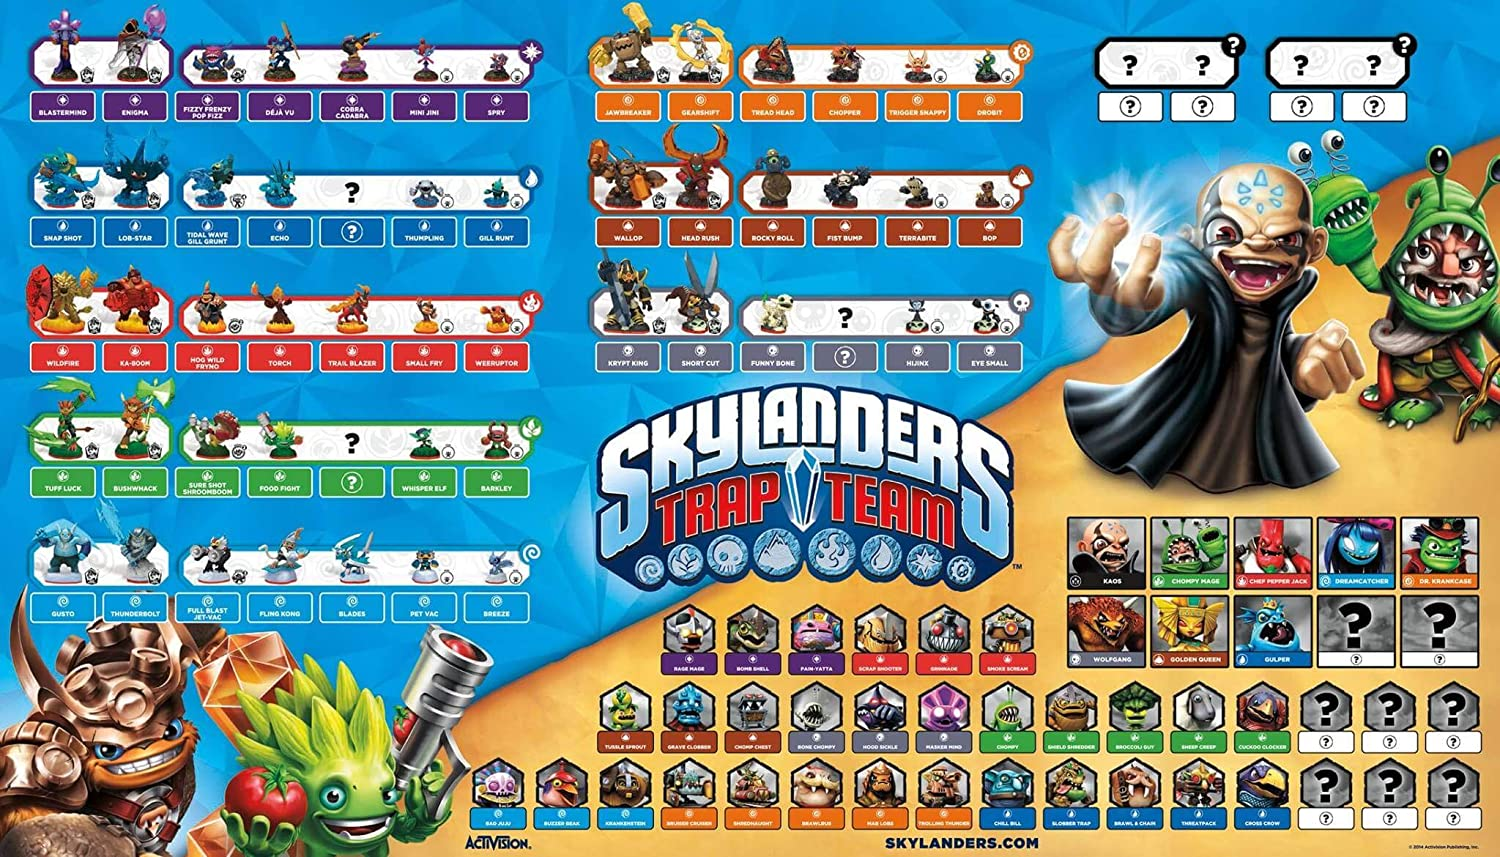 Skylanders Superchargers Jump And Run Video Game Poster Print 61x91,5